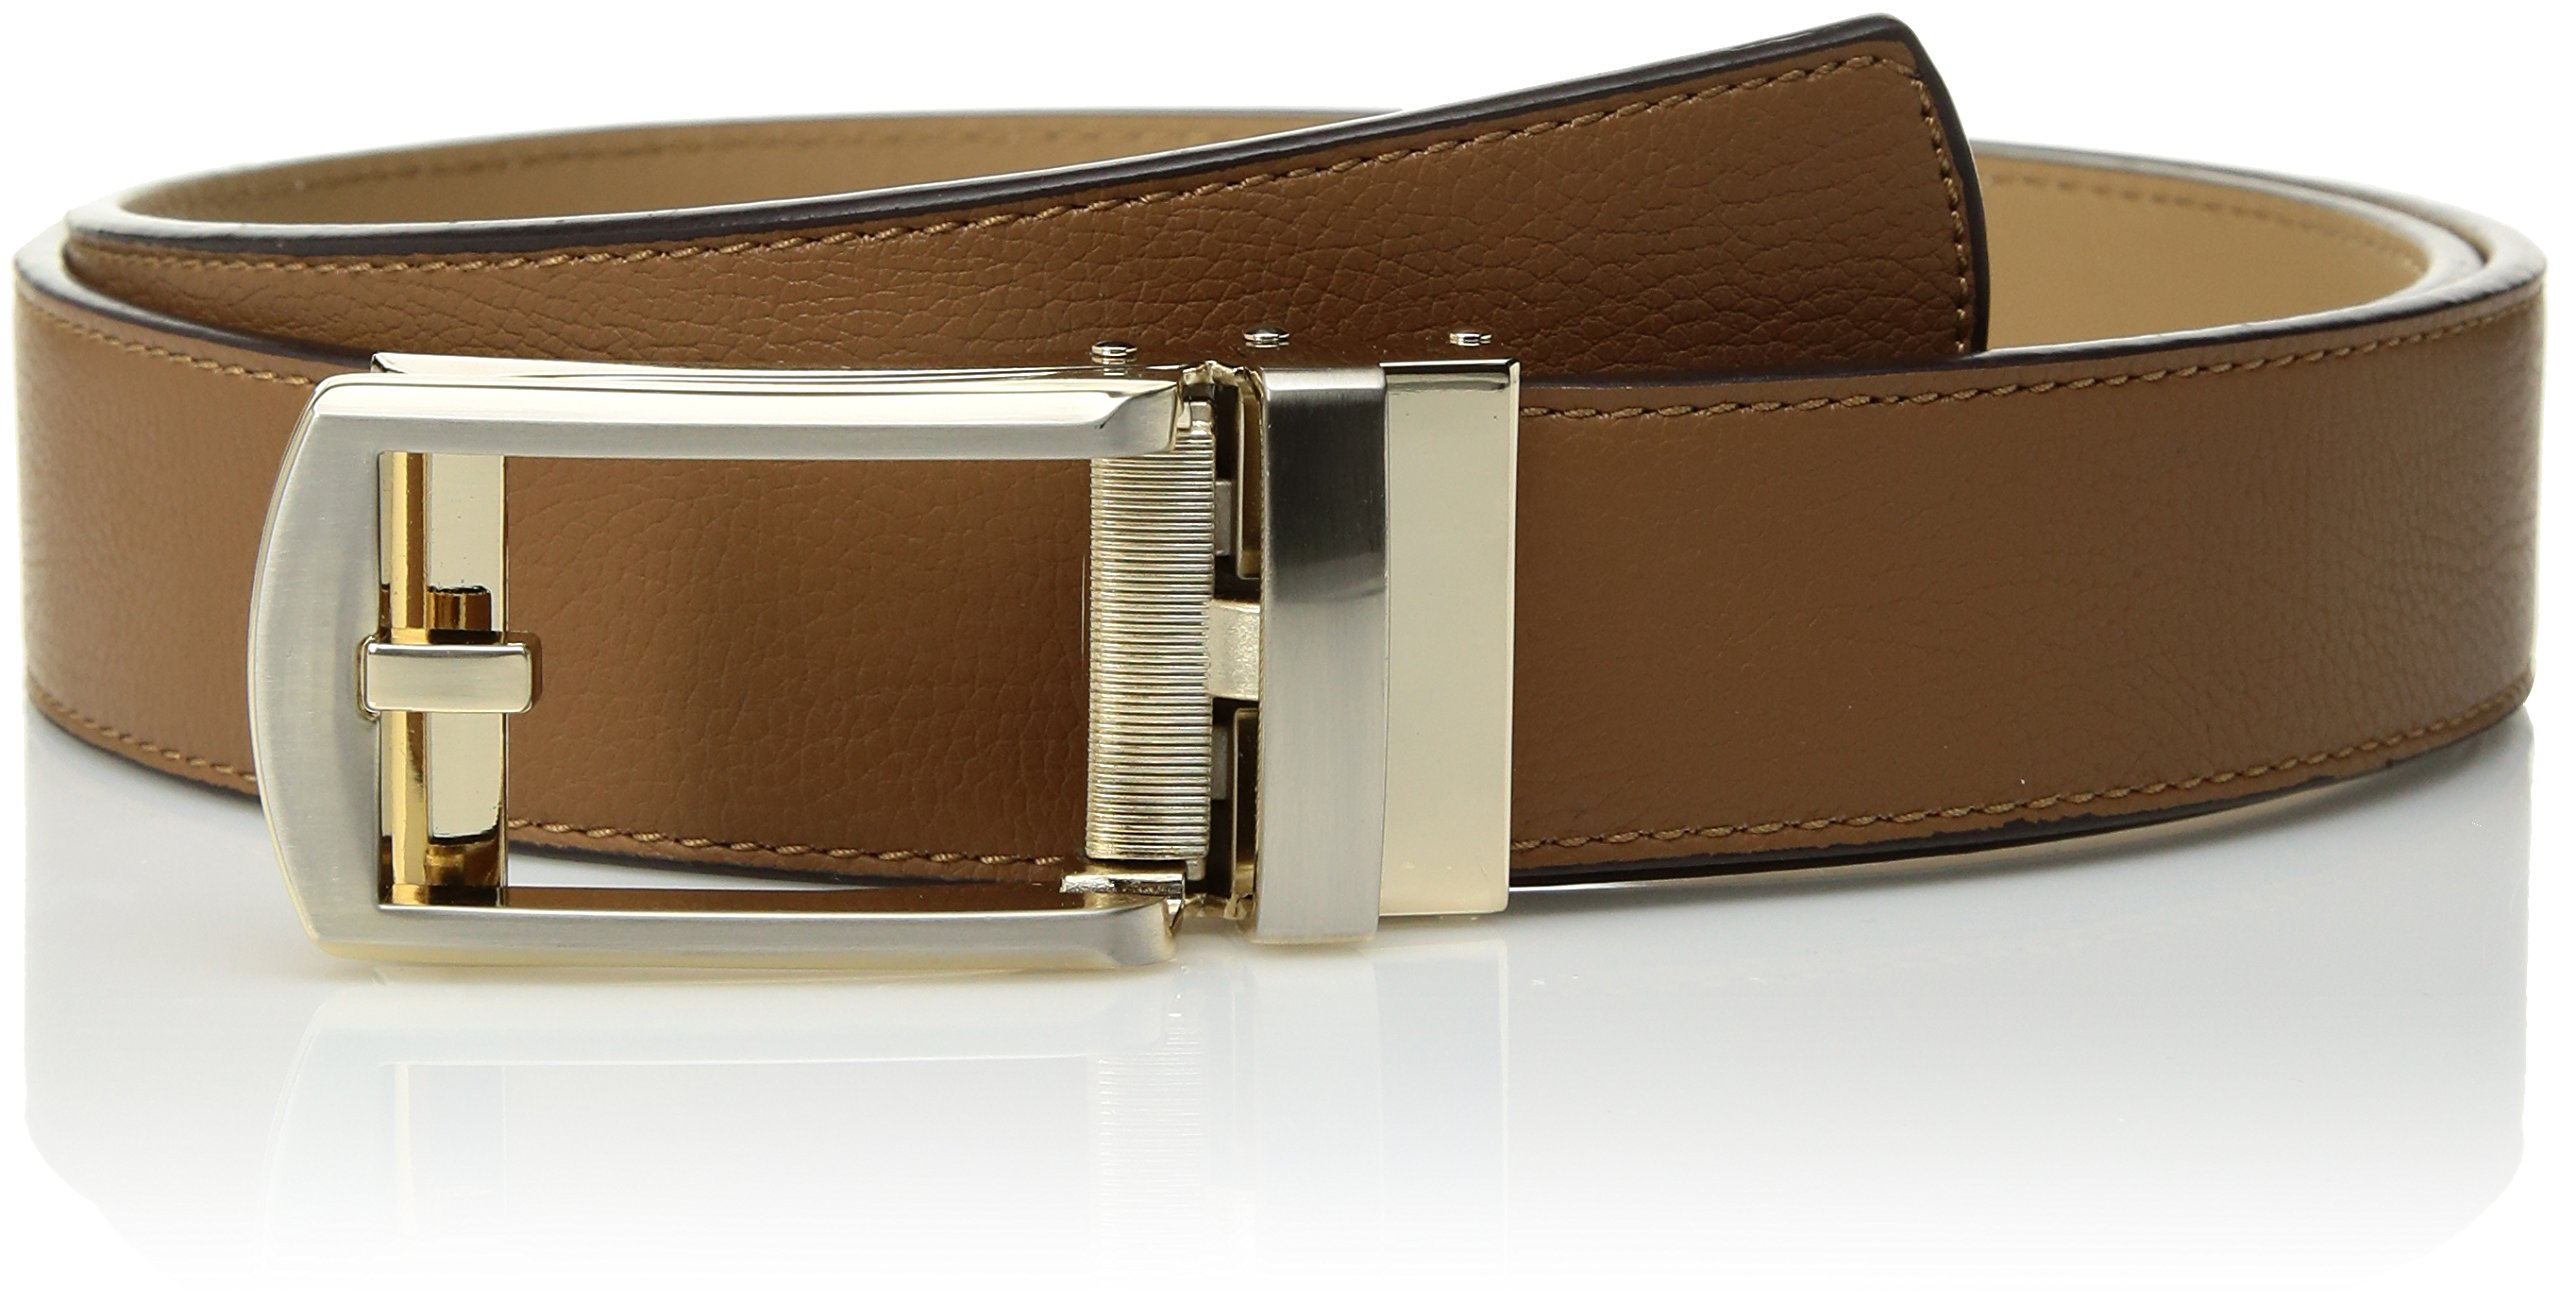 Comfort Click Men's Adjustable Perfect Fit Leather Belt-As Seen on TV, Camel/Brushed Gold-Pebble, ONE SIZE